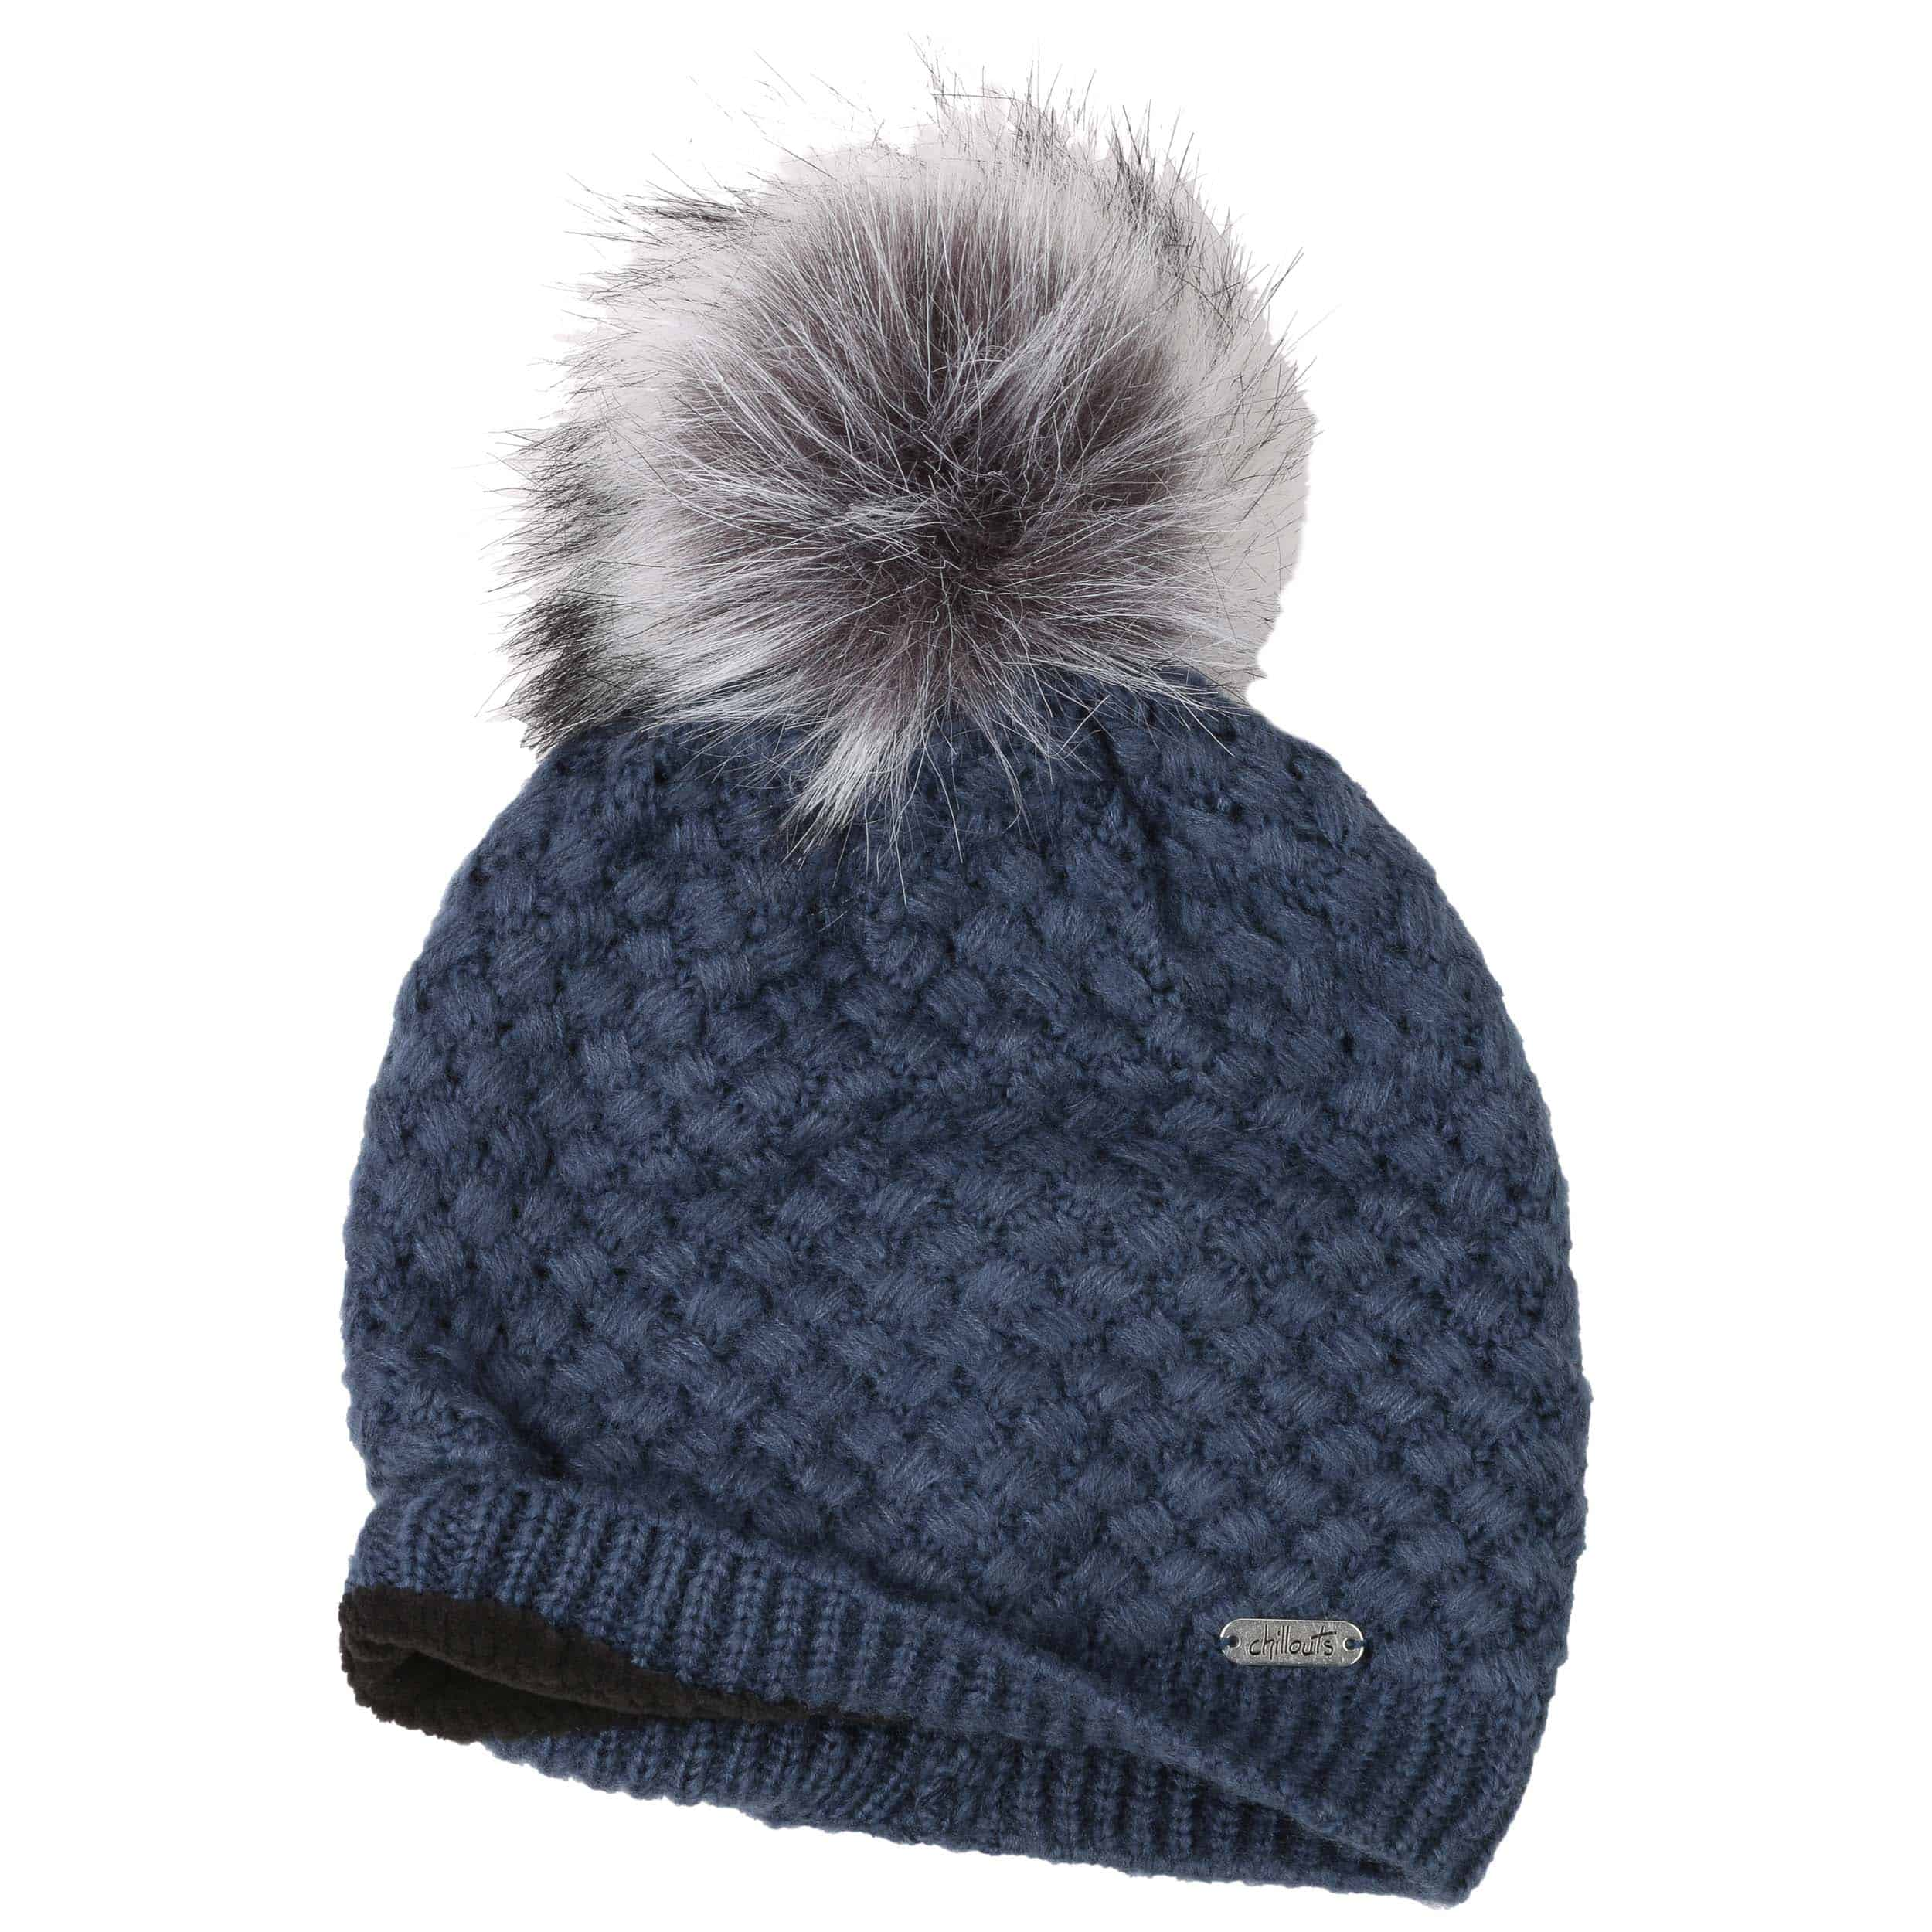 Gorro con Pompón Ashley by Chillouts - Gorros - sombreroshop.es adf86b529fc